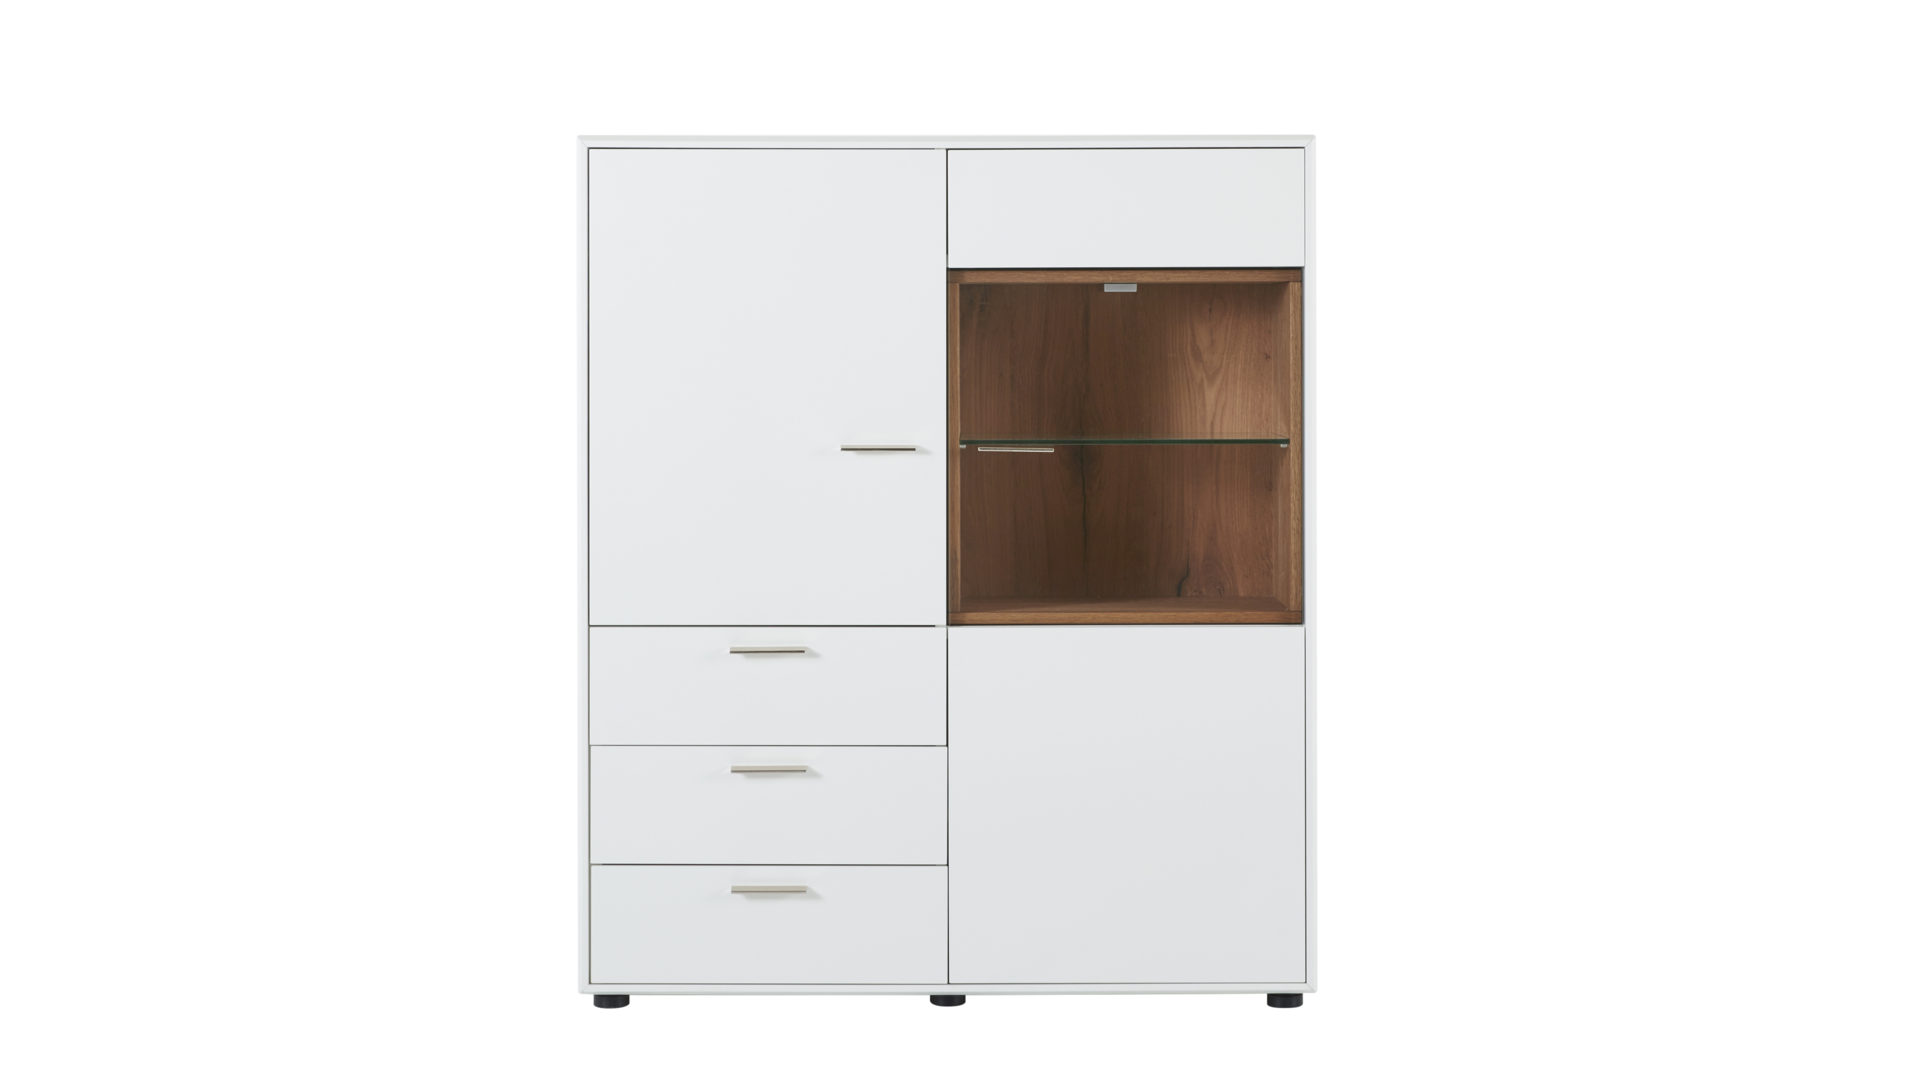 Esszimmer Highboard Nemann Vechta Interliving Esszimmer Highboards Interliving